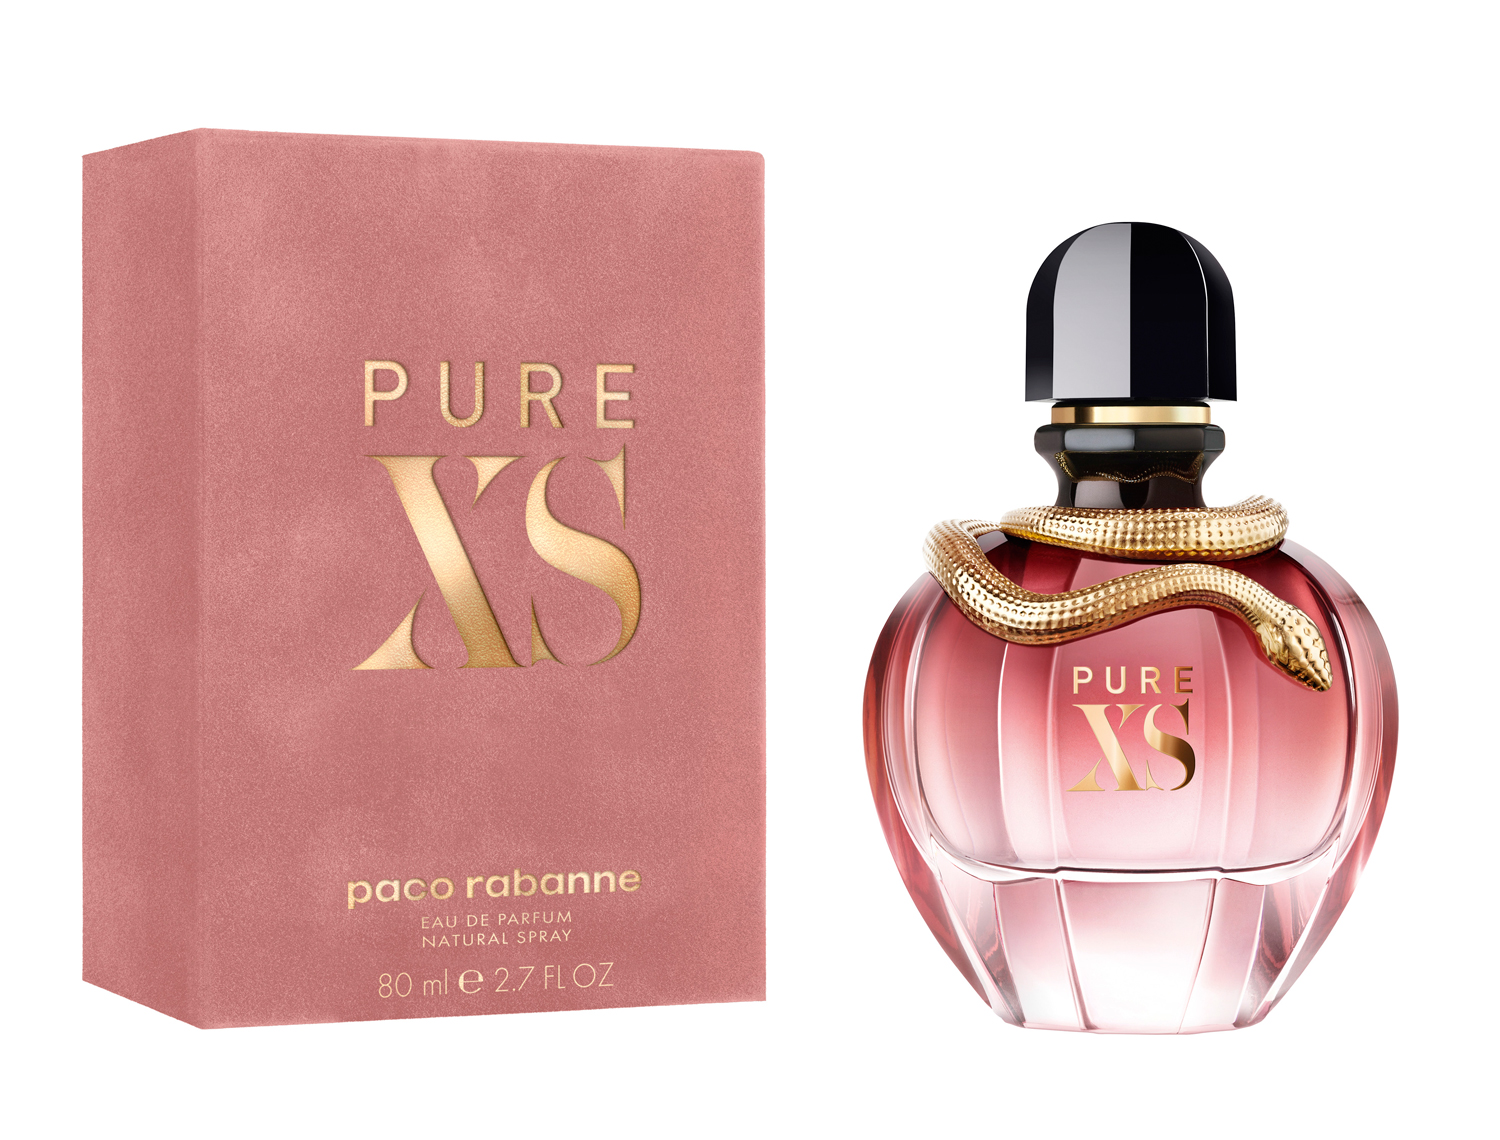 Paco Rabanne Pure XS For Her Eau De Parfum 80ml